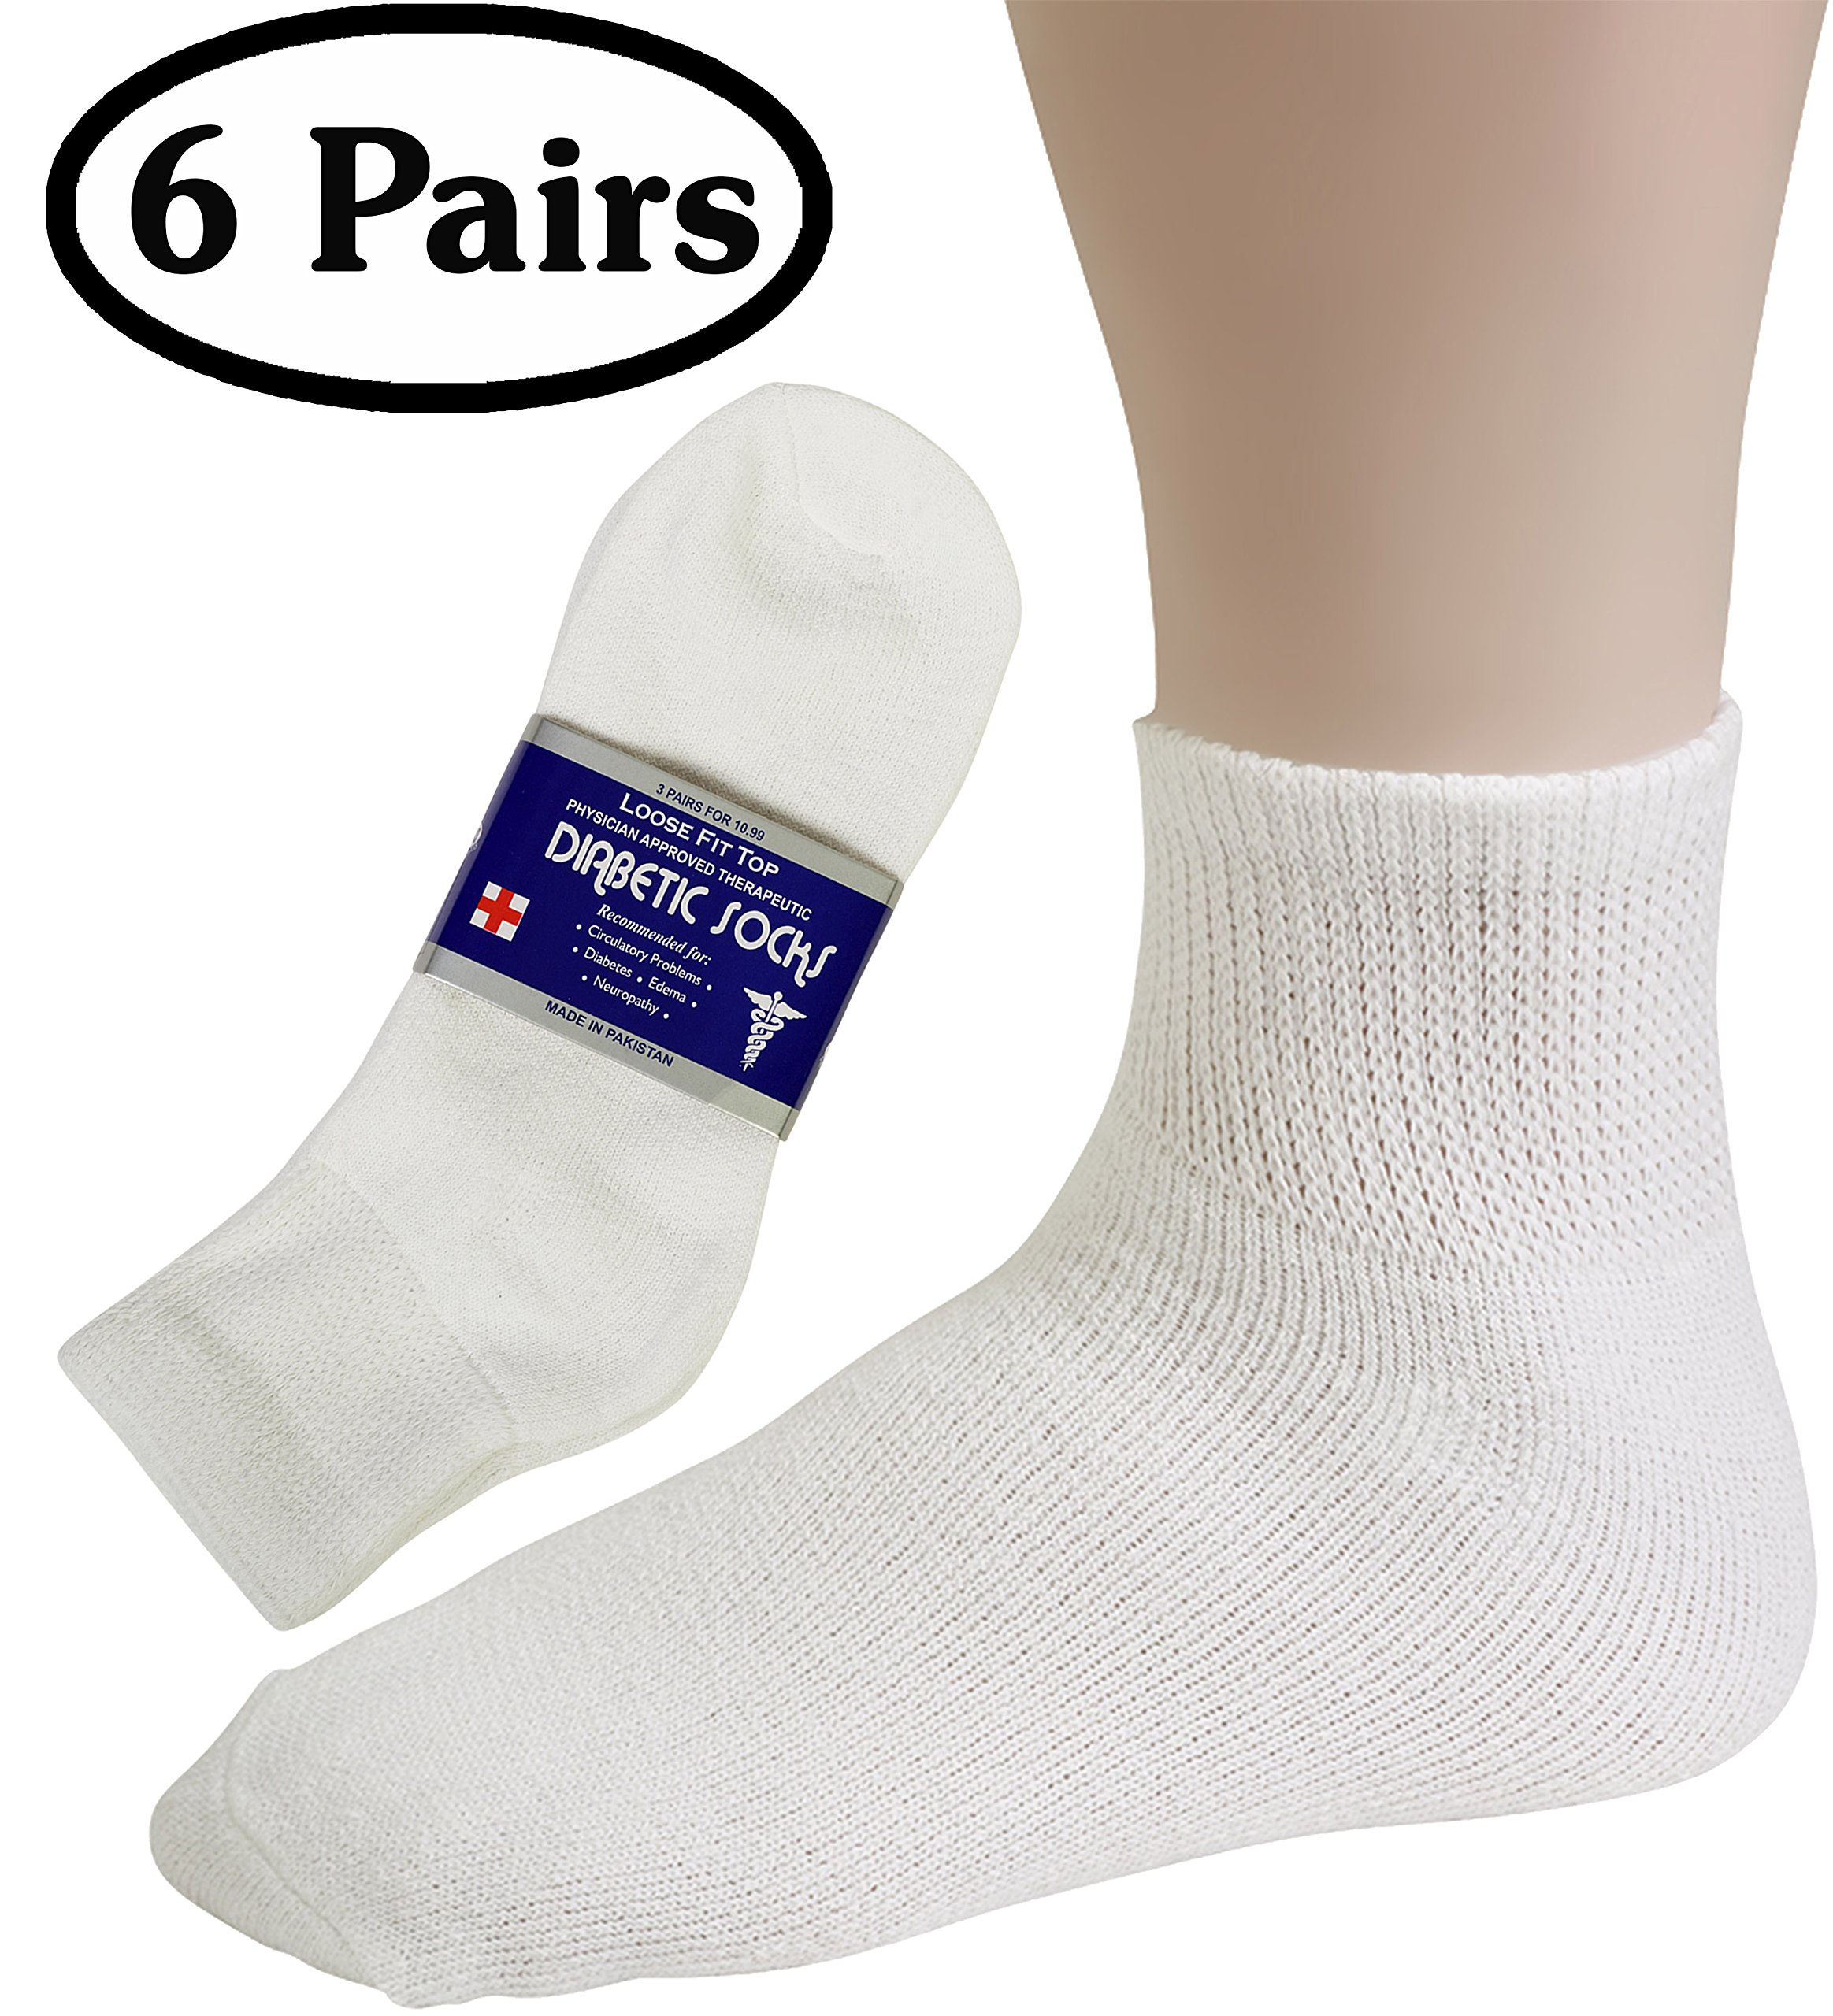 Diabetic Socks Womens Cotton 6-Pack Ankle White By DEBRA WEITZNER ankle/white womens 9-11